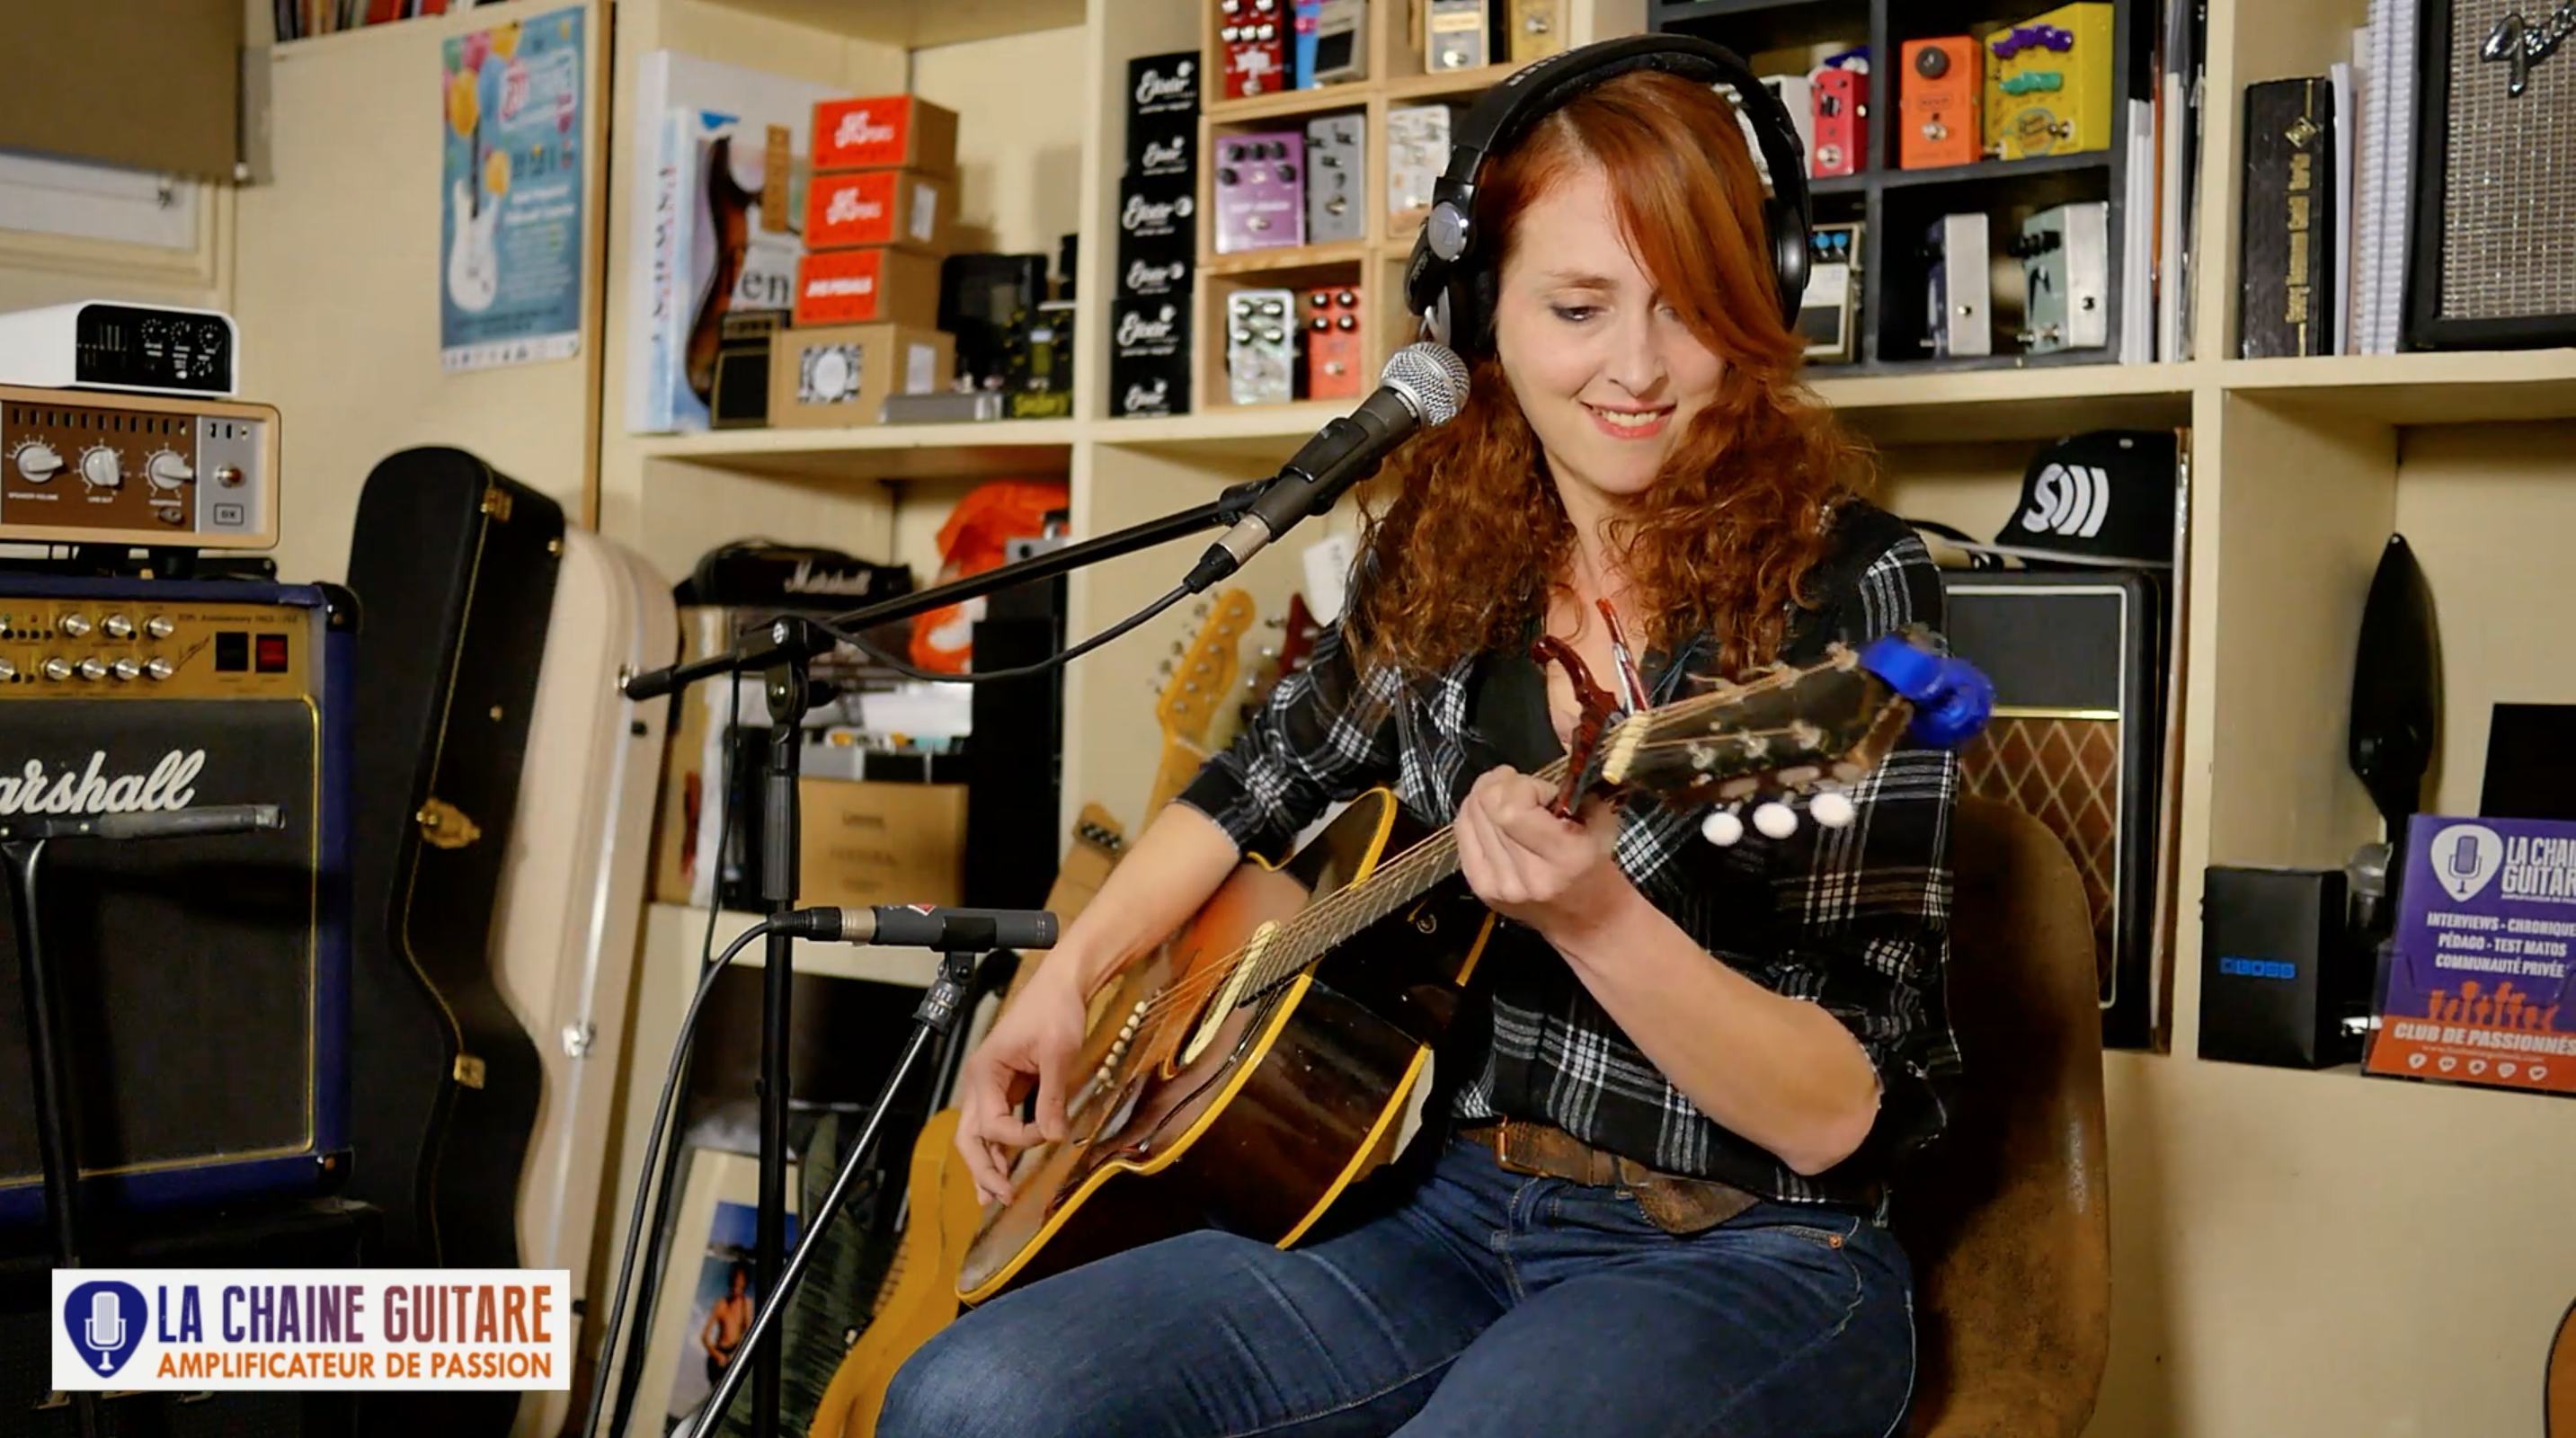 Tiphanie Doucet, replay of a live concert from the showroom in Paris, France